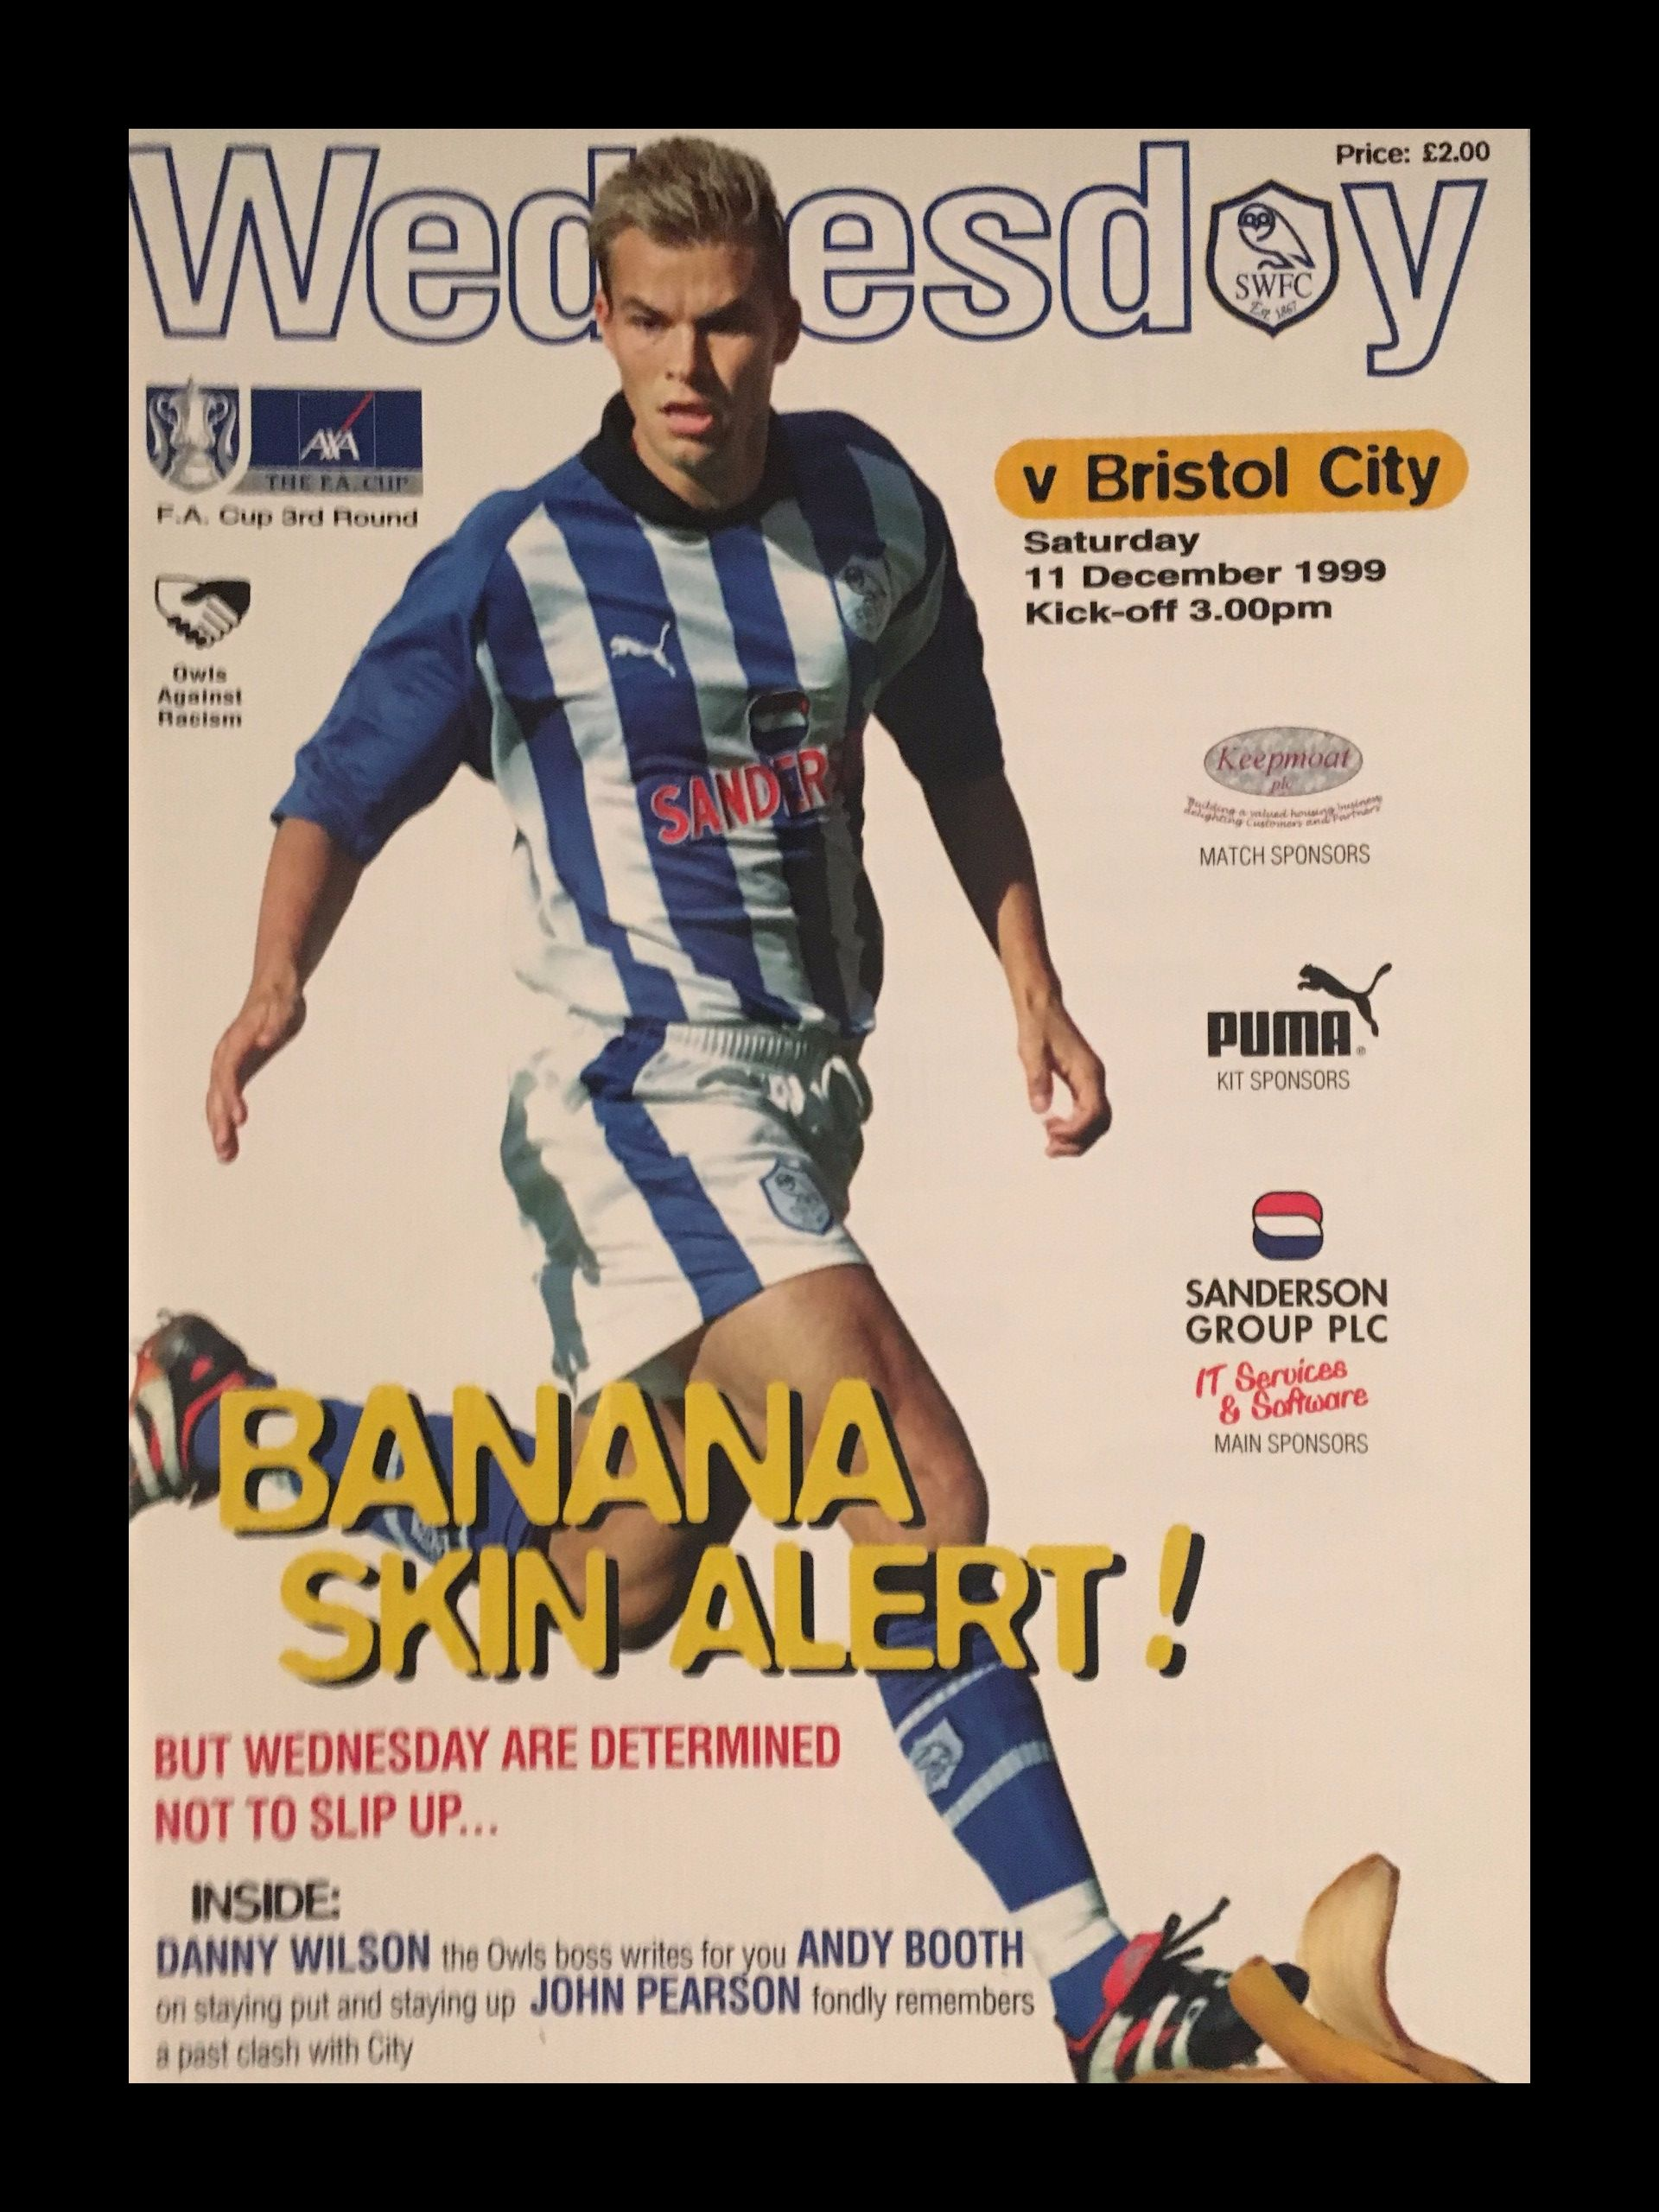 Sheffield Wednesday v Bristol City 11-12-1999 Programme